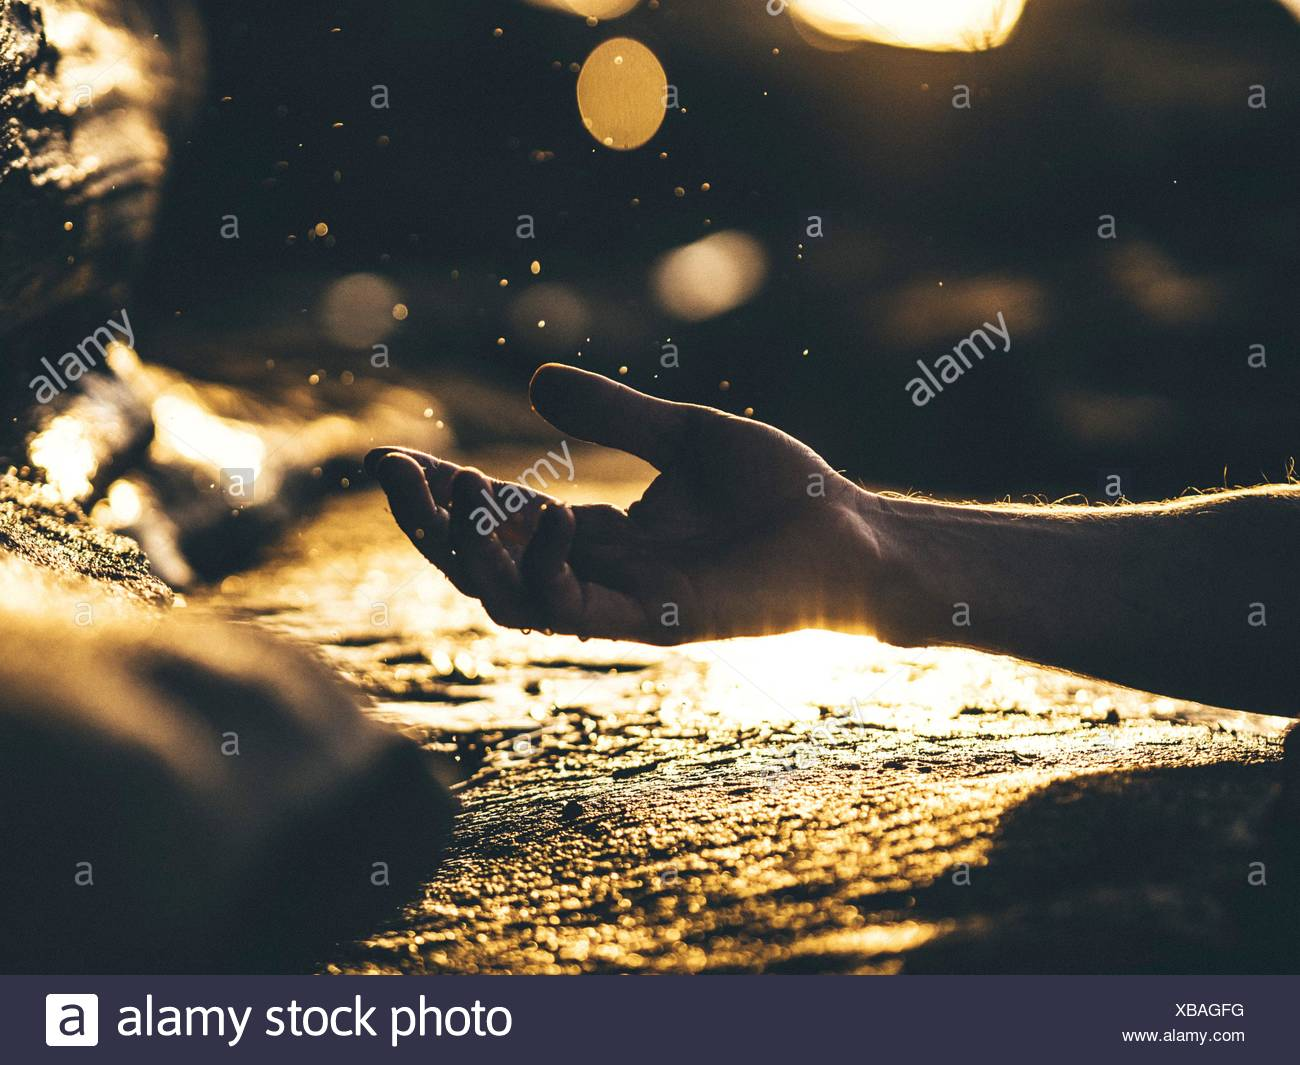 Human Hand In Gesture, Reflecting Surface - Stock Image